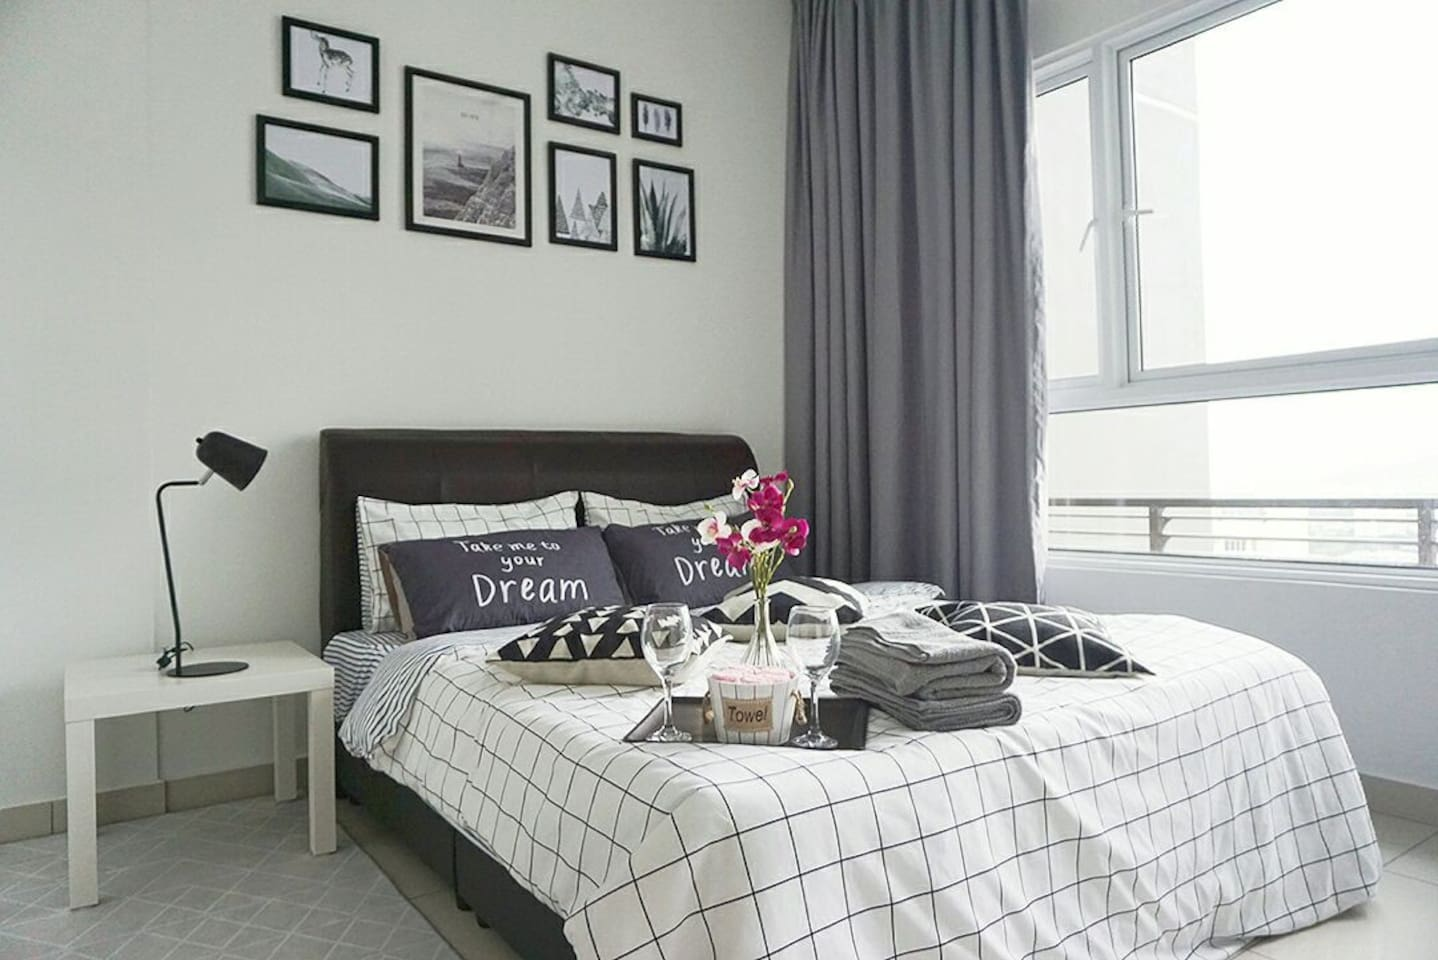 The perfect place to have a stay with the cozy environment, the newly renovation and furnishing